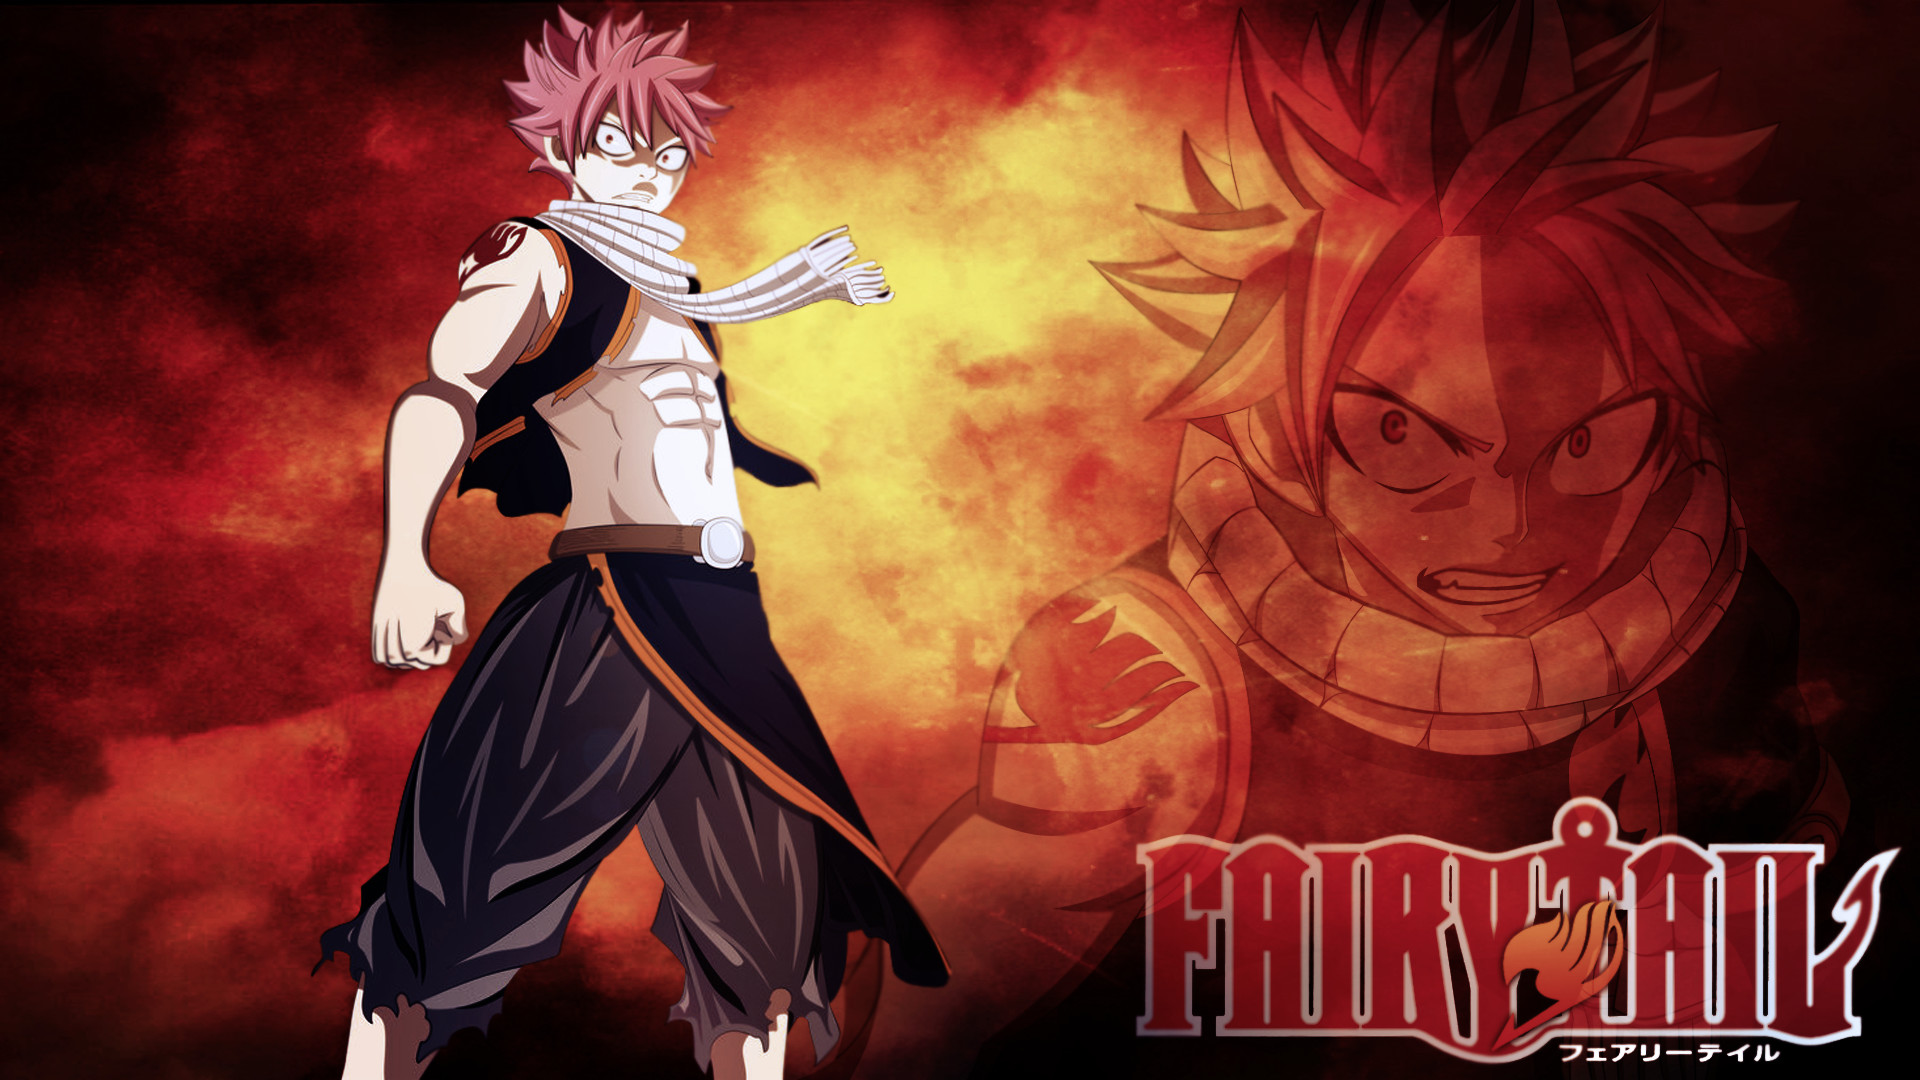 1920x1080 Fairy Tail Wallpaper Background Hd Is High Definition Wallpaper You ...